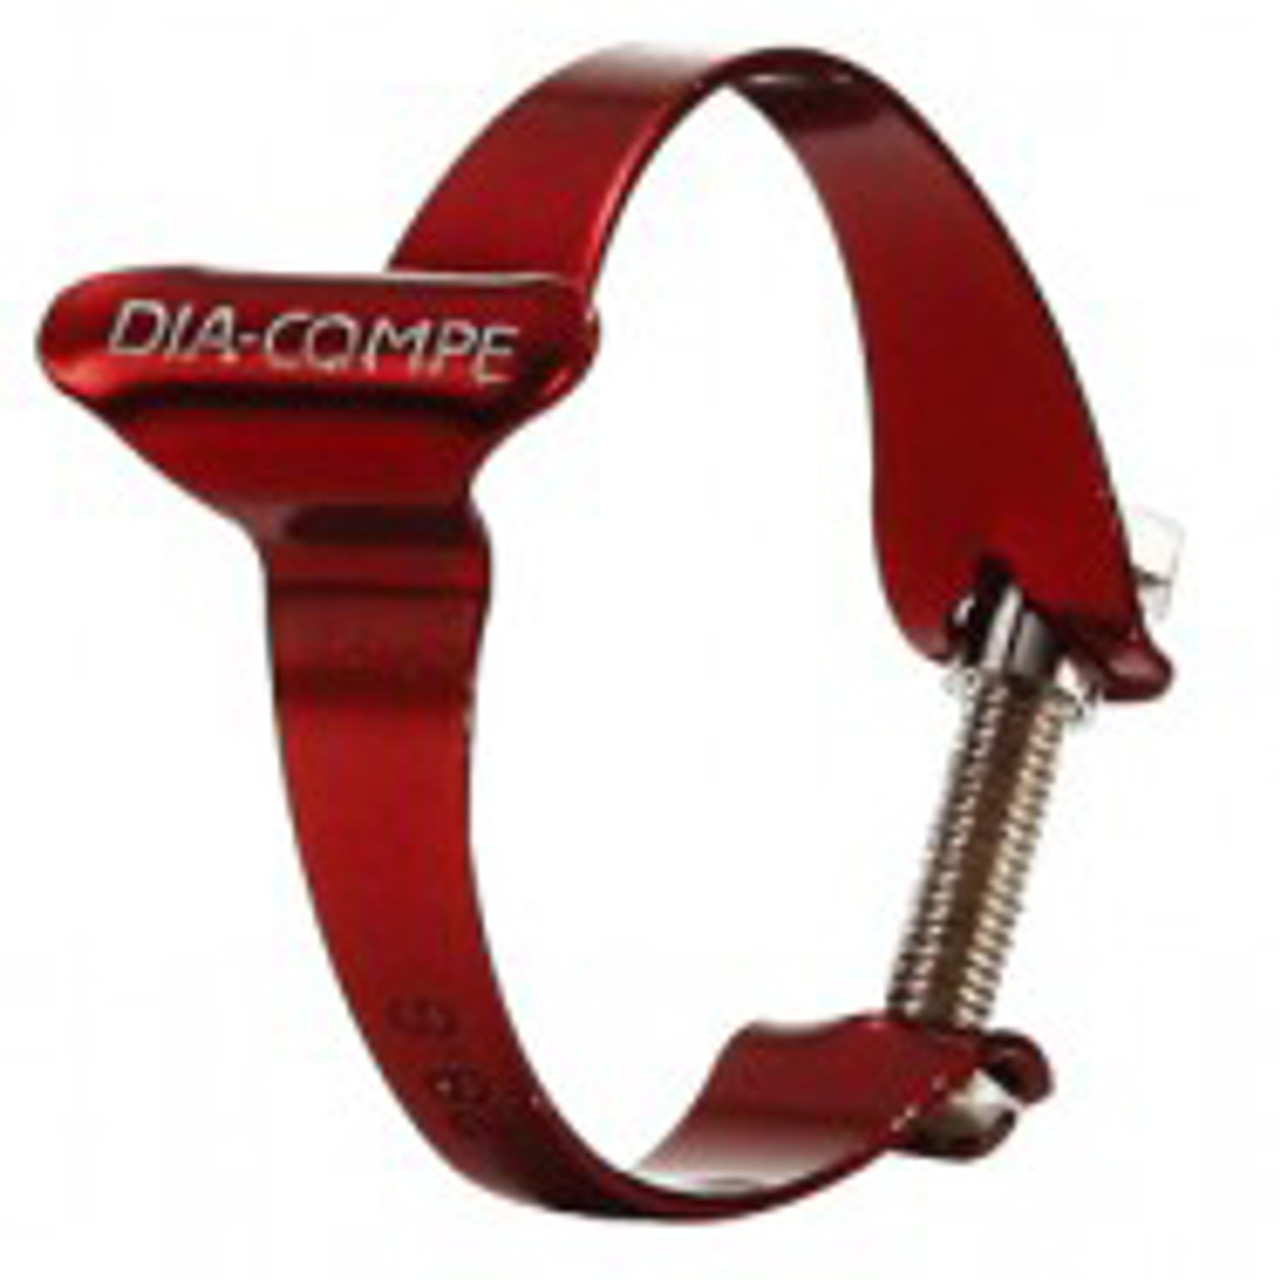 Dia-Compe Cable Clamps Chrome Pack of 2 x 28.6mm Old School Retro BMX